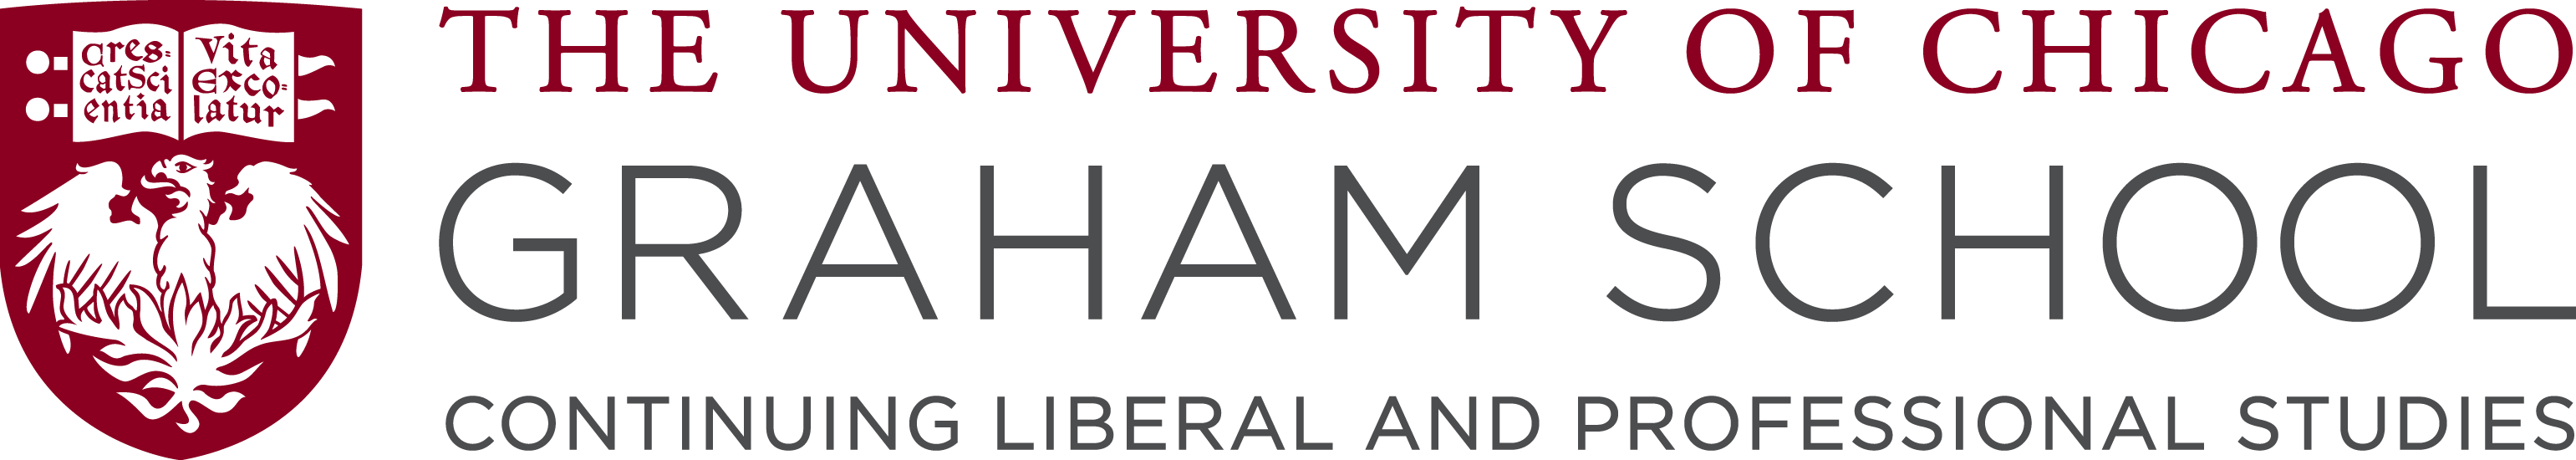 Logo: The University of Chicago Graham School of Continuing Liberal and Professional Studies